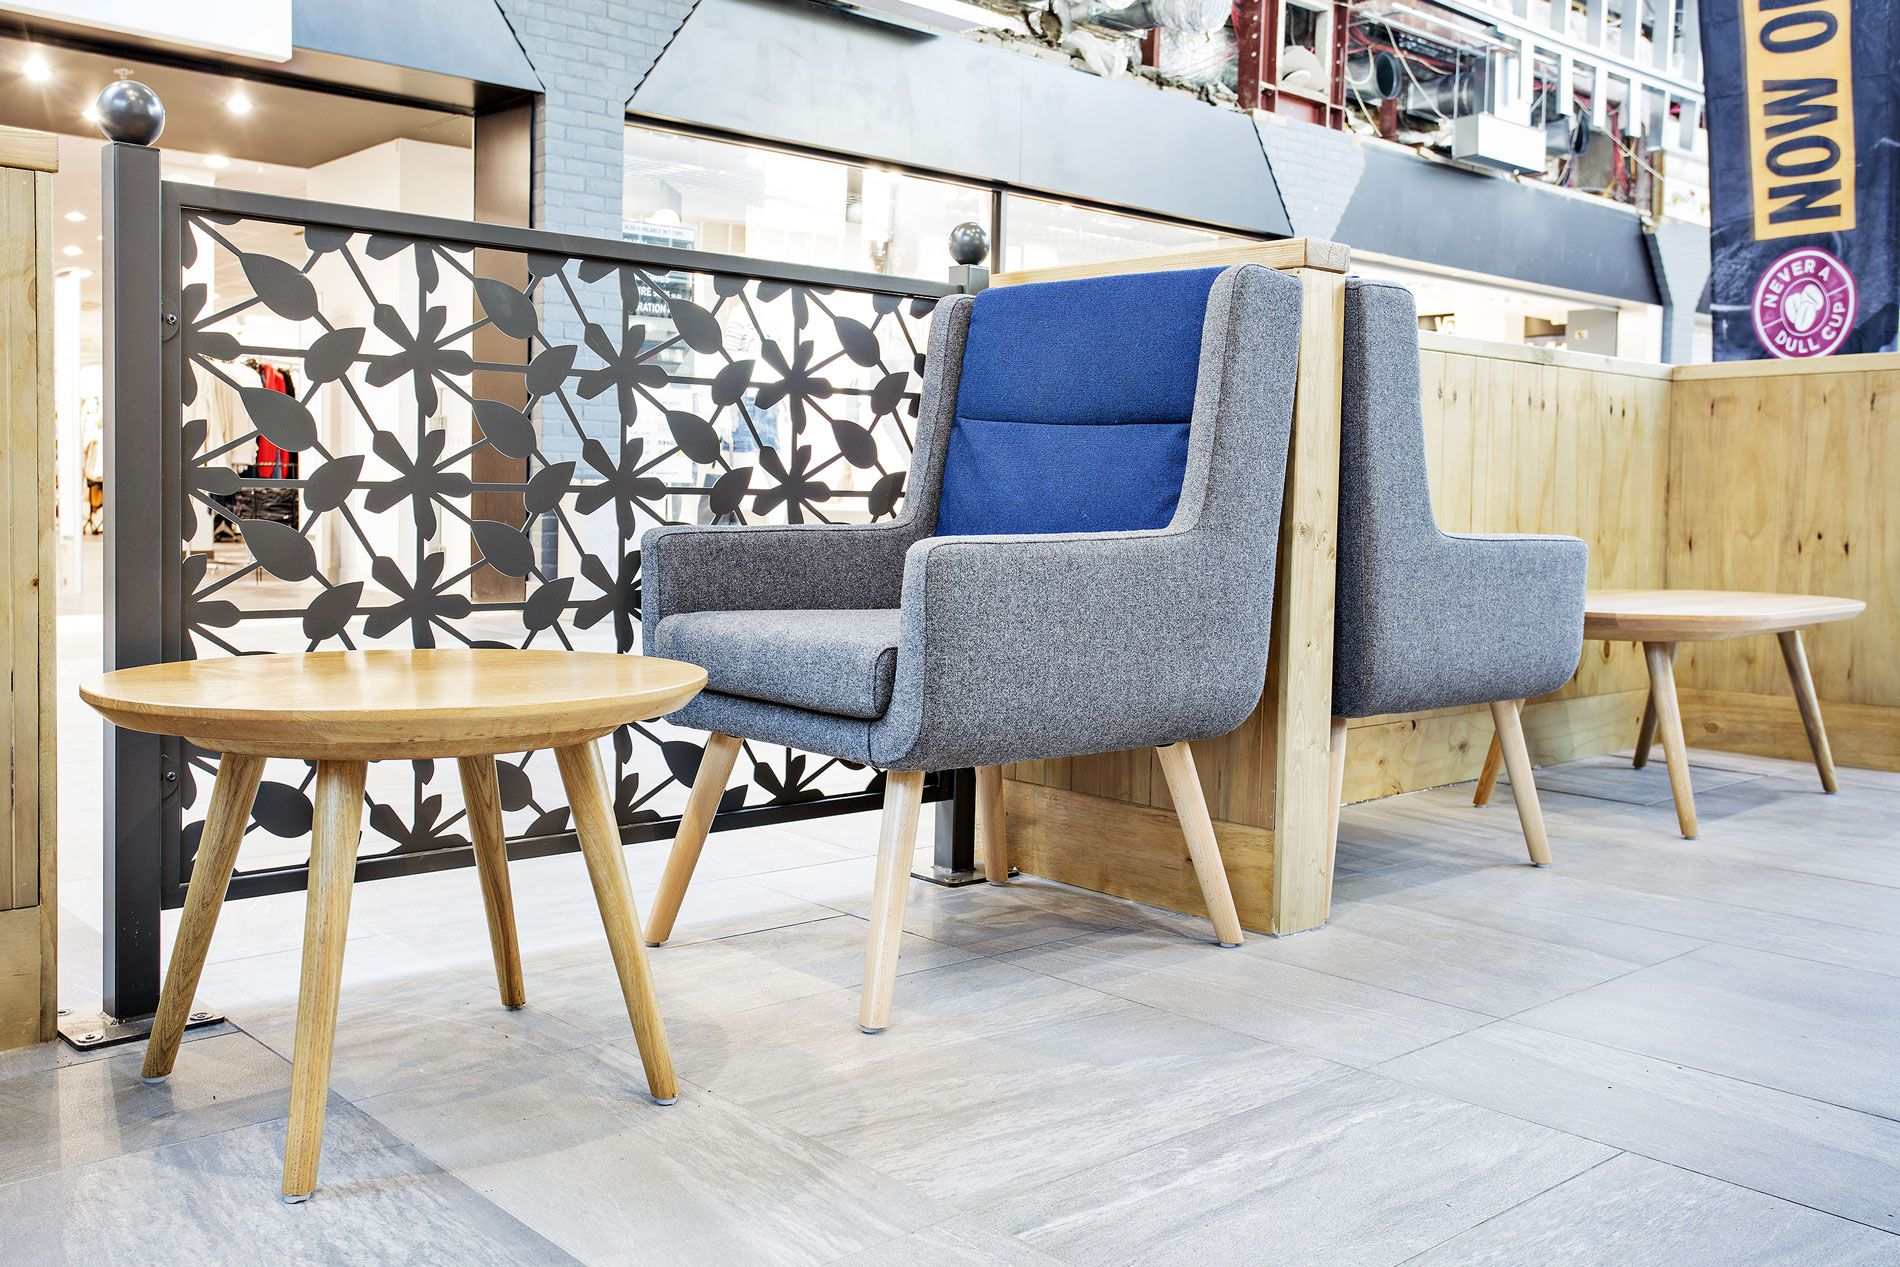 Seating Inspiration At Costa Coffee Grafton Centre In